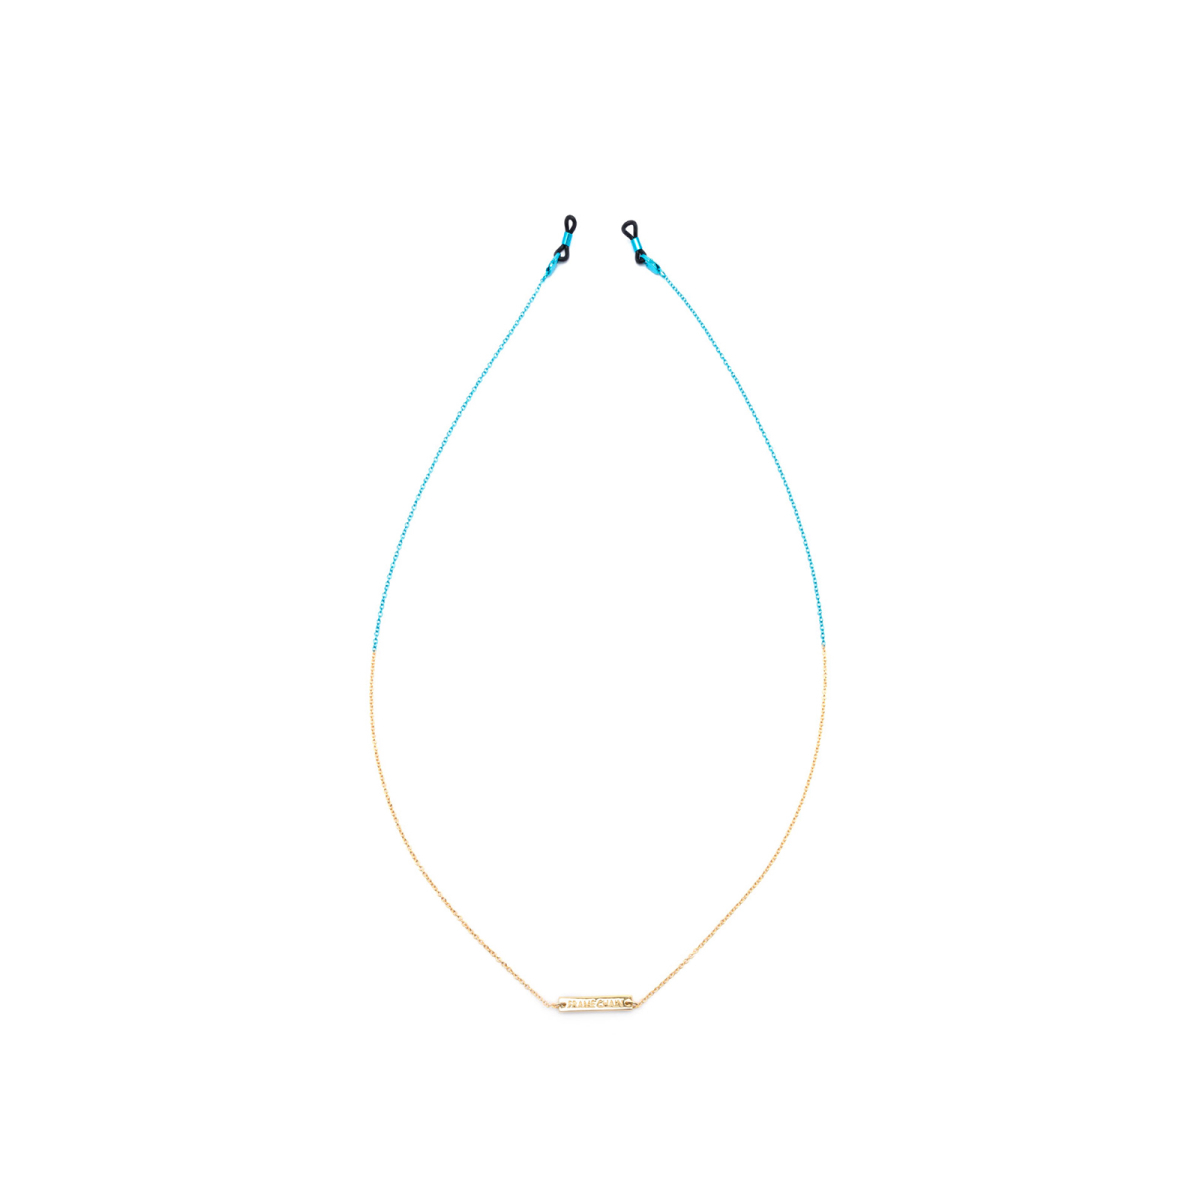 Frame Chain® Accessories: Frutti color Blue And Gold.